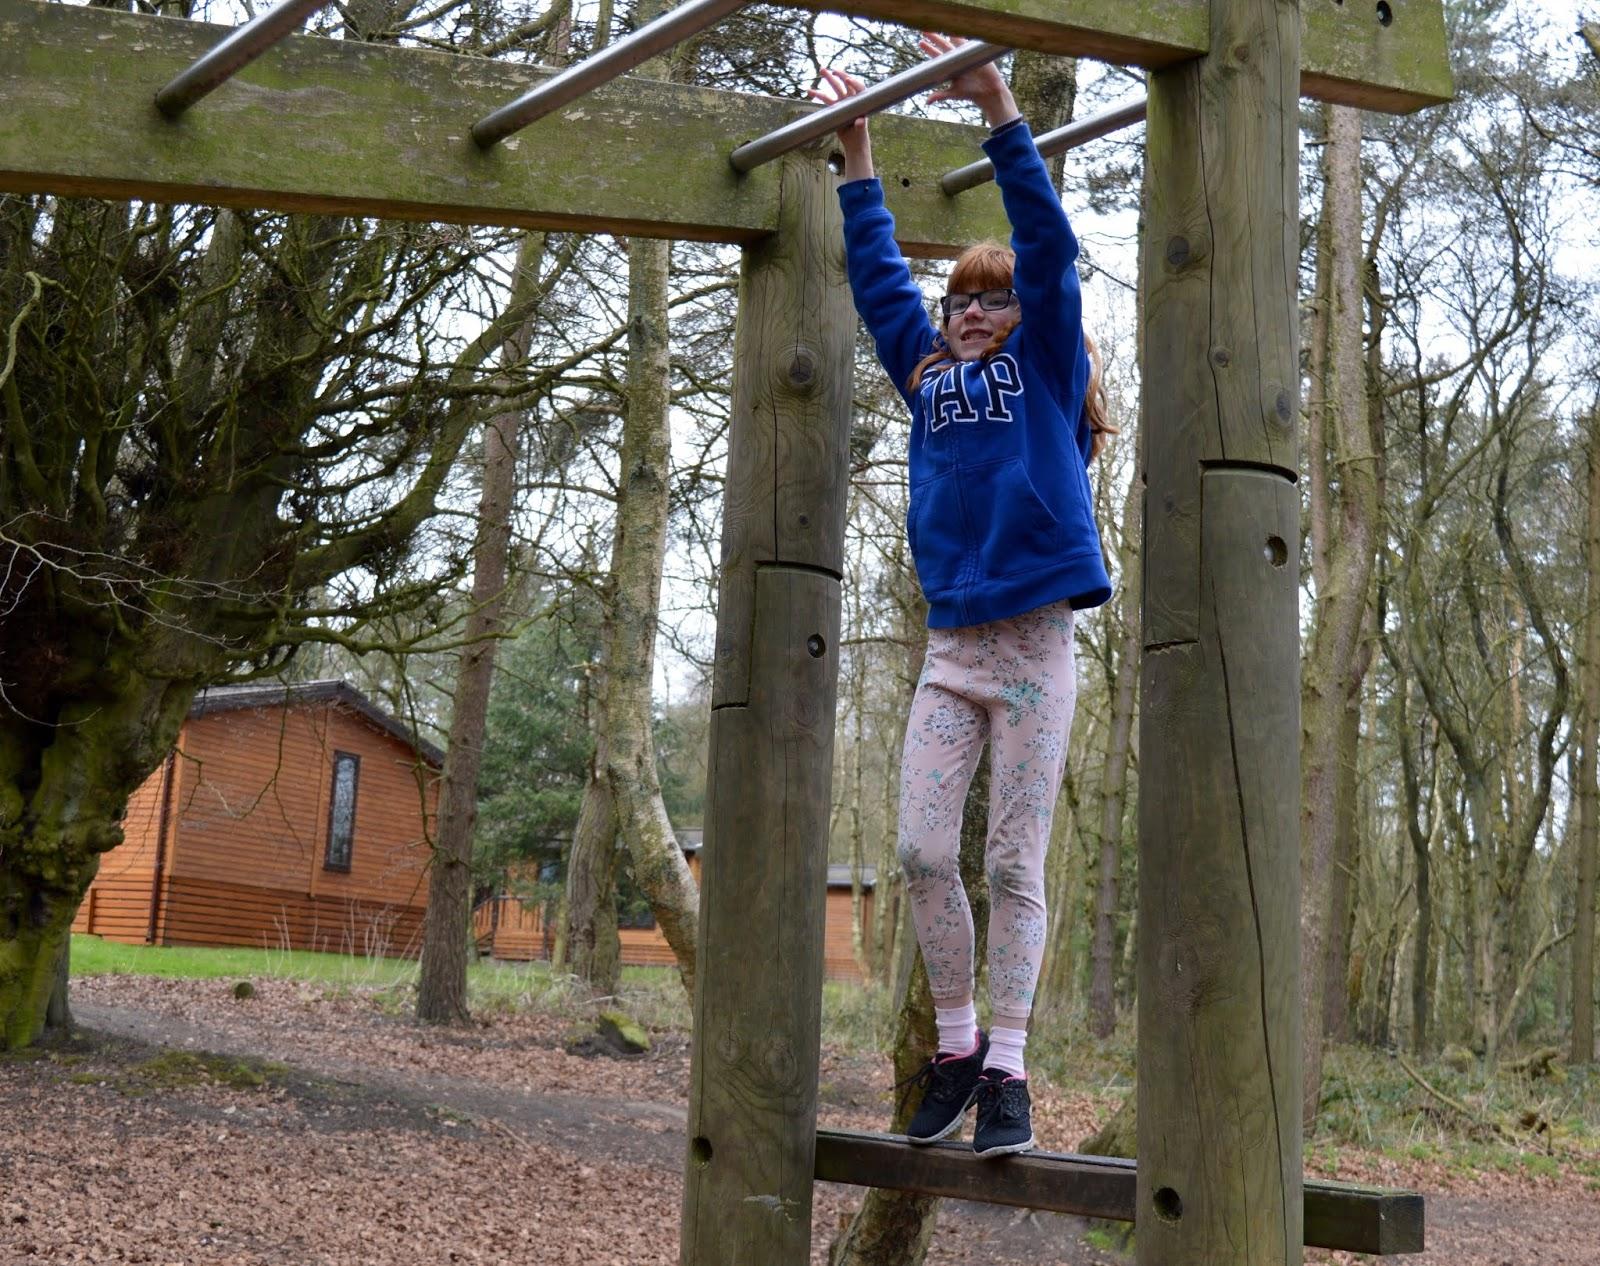 A Review of Darwin Forest & The Peak District with Tweens  - monkey bars